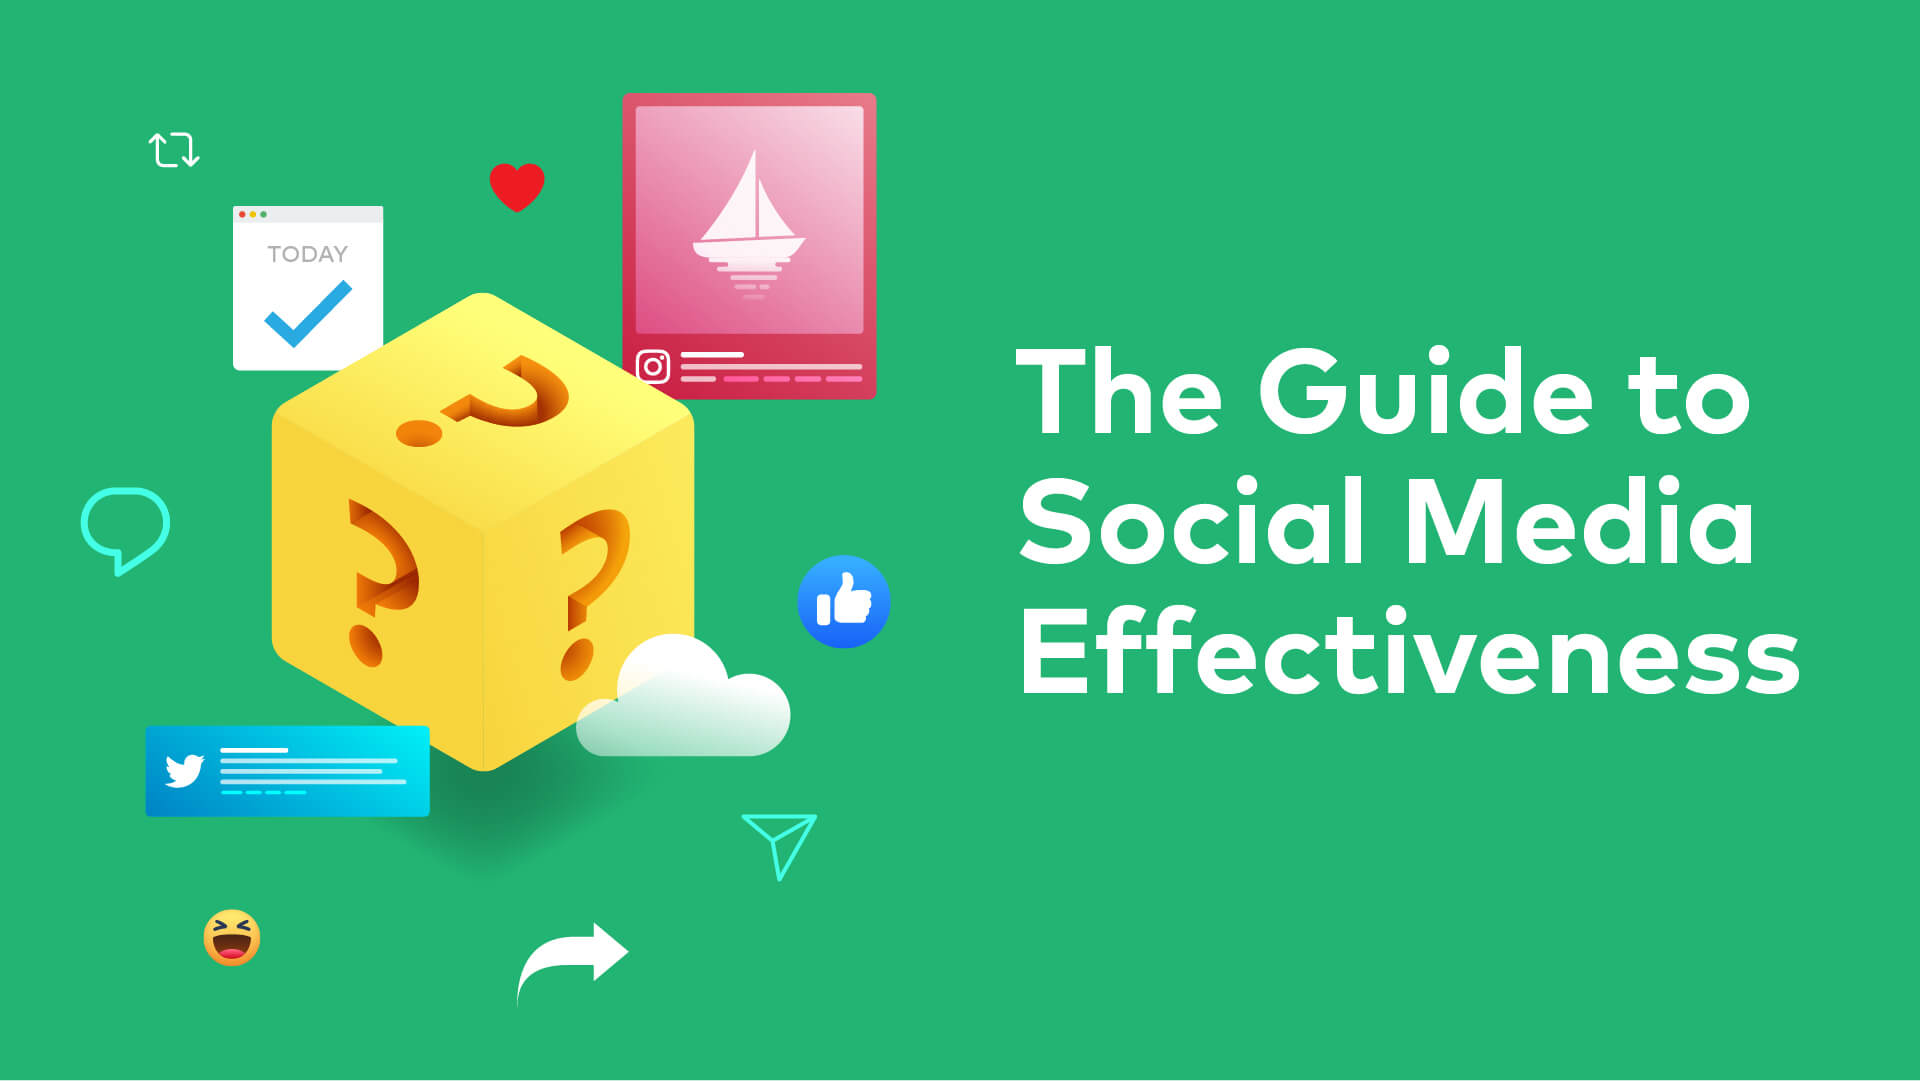 The Guide to Social Media Effectiveness